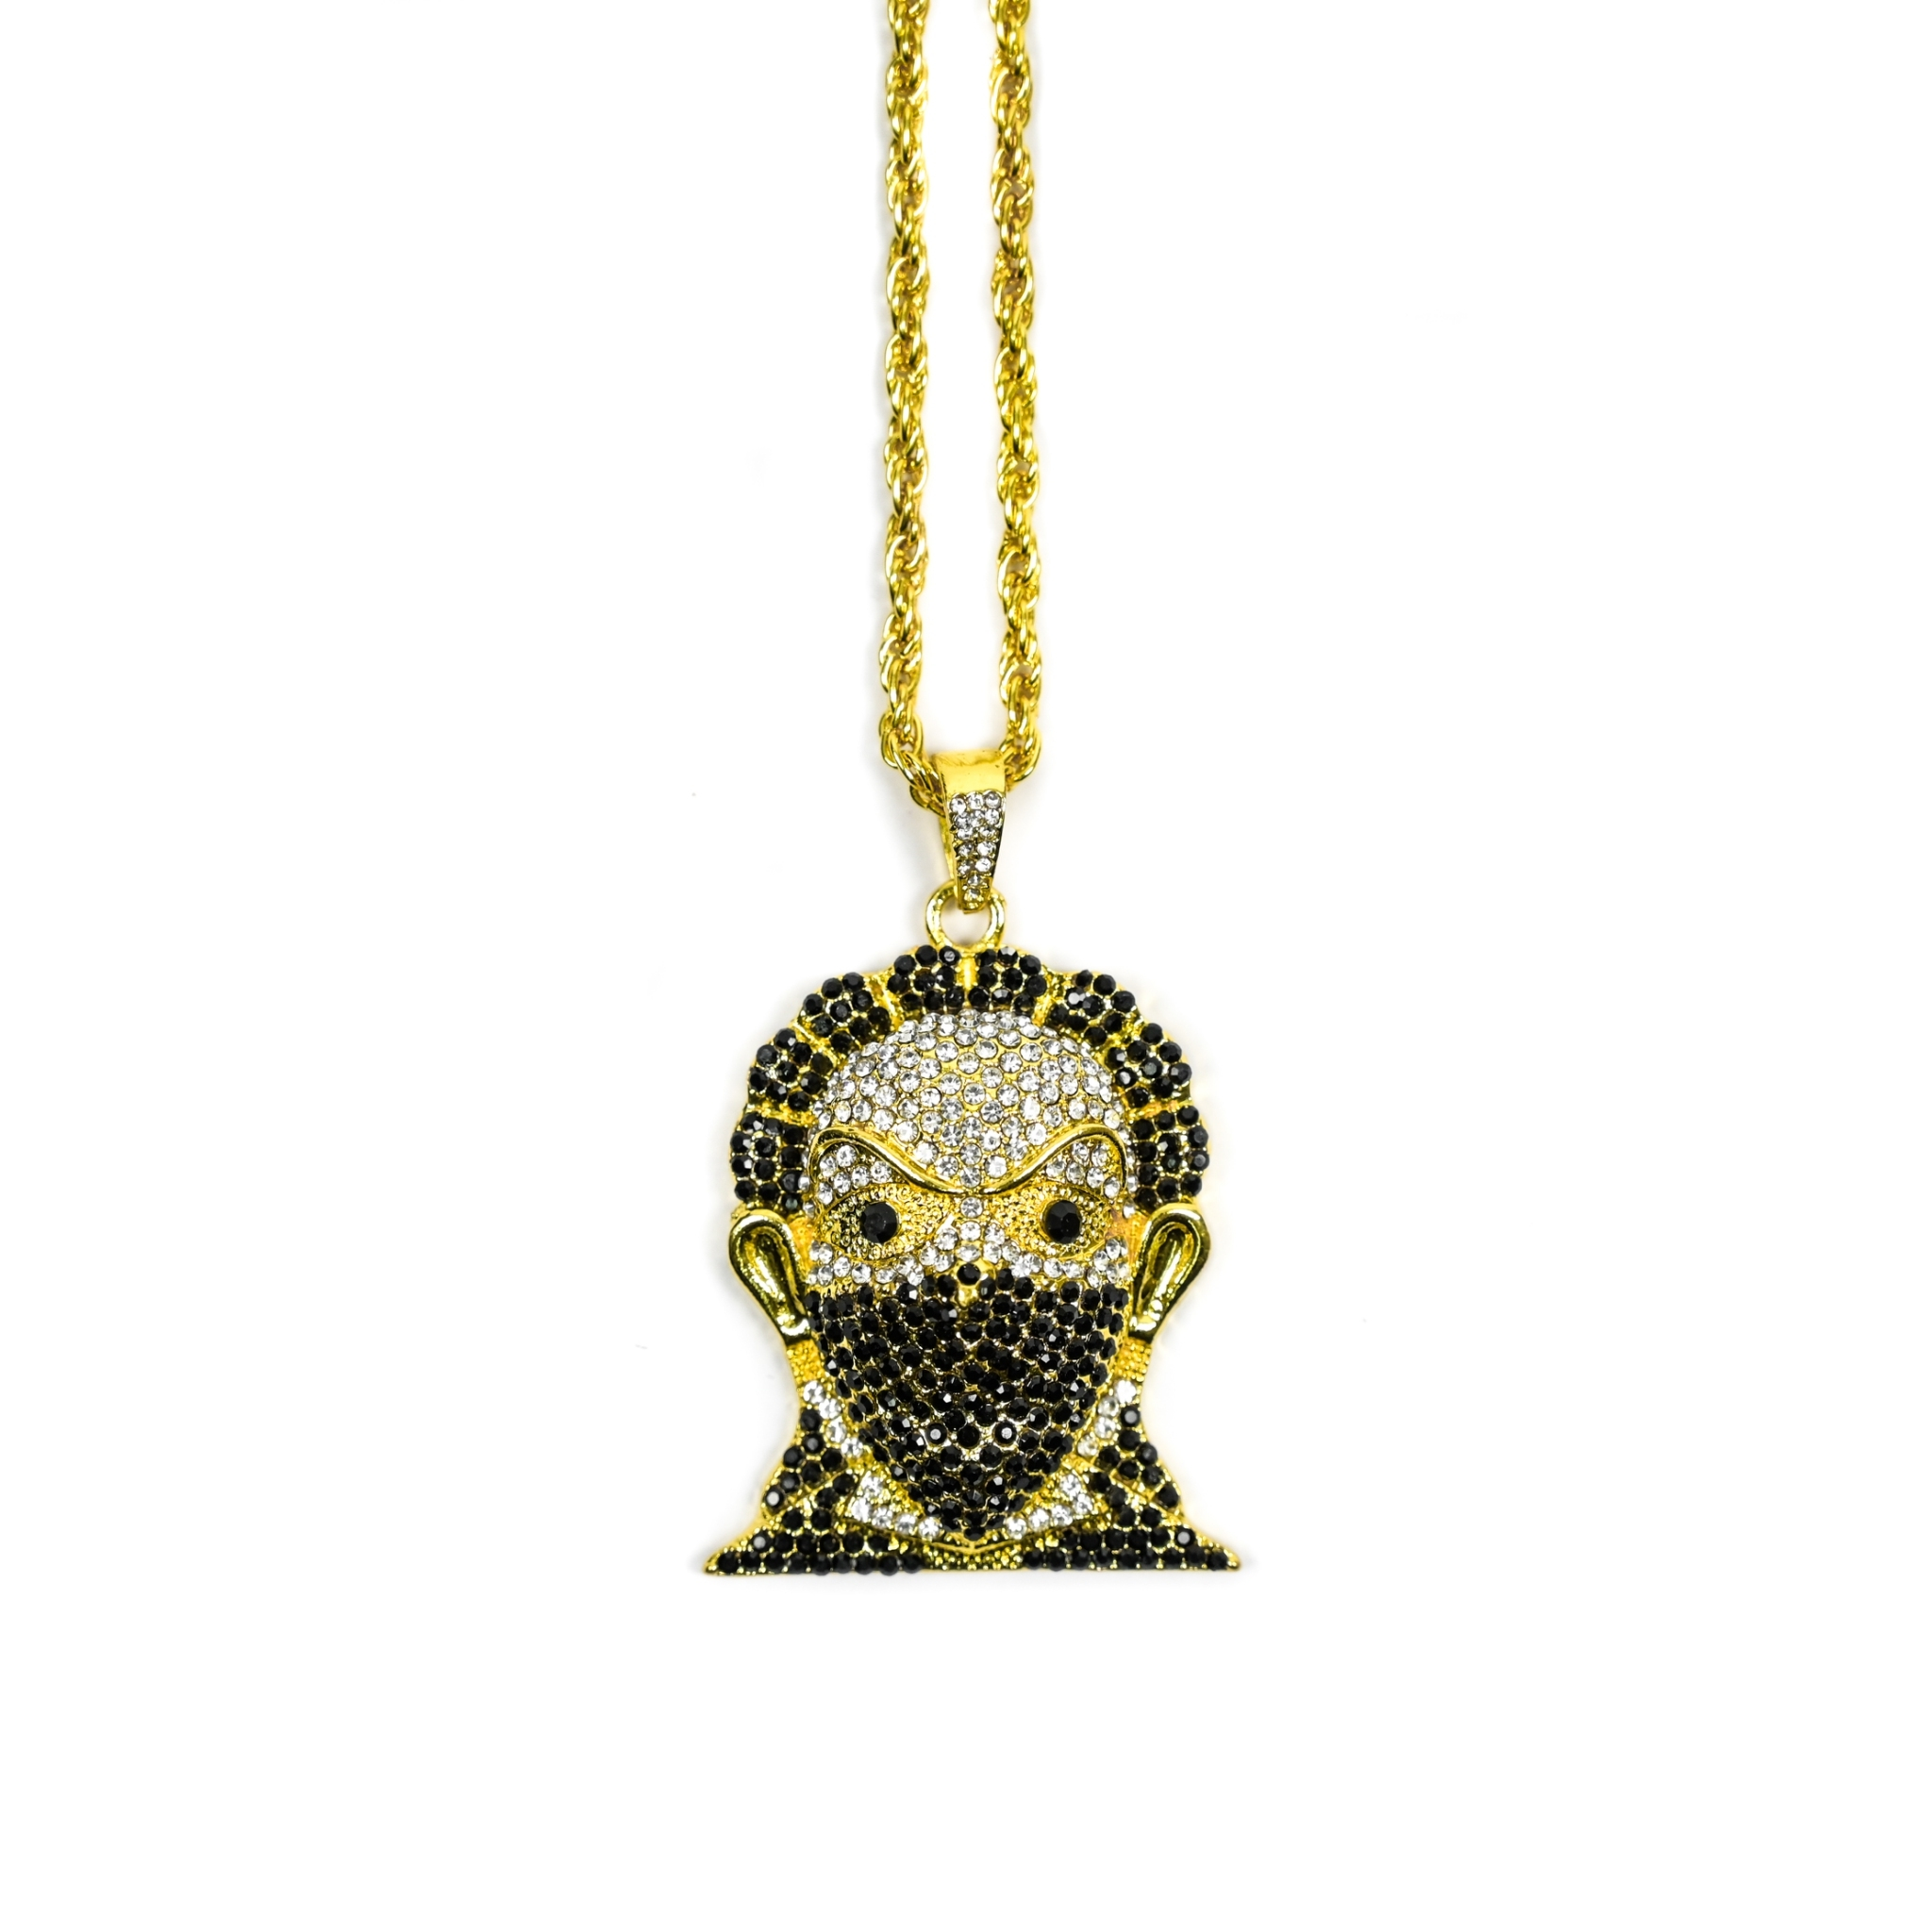 SOLASTA MAN WITH A MASK NECKLACE GOLD